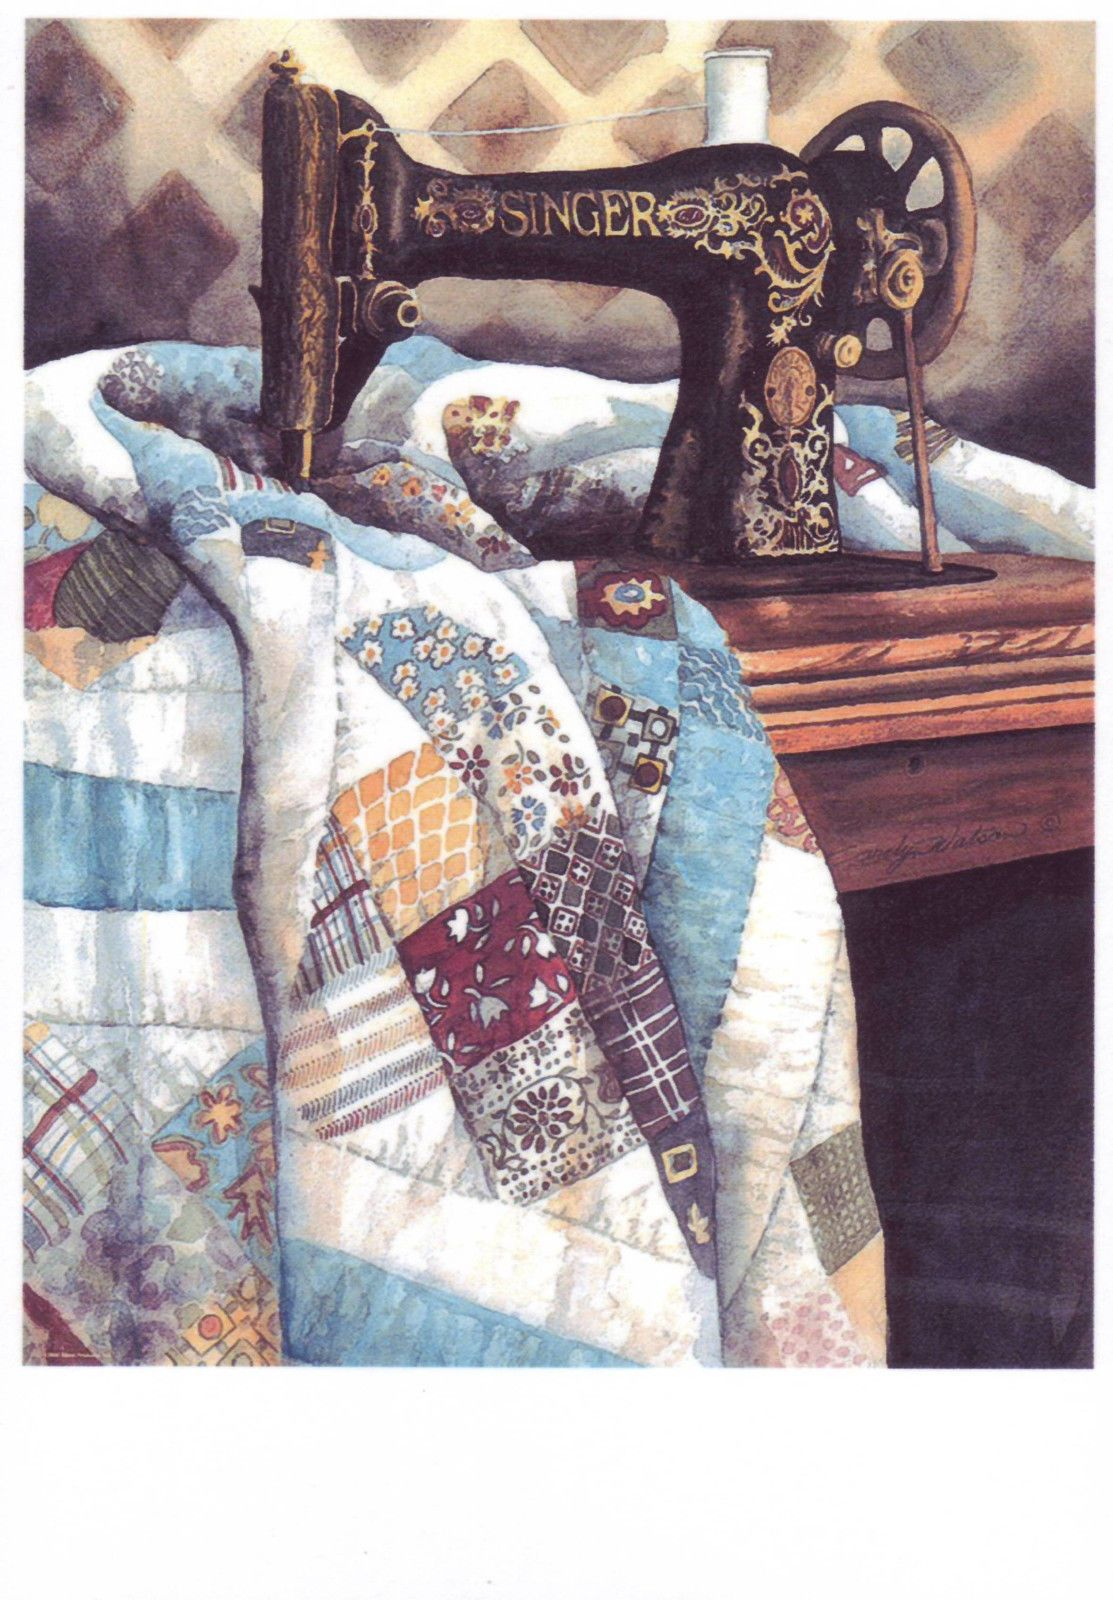 Sew Art Sewing Machine Patchwork Quilt Blanket Hand Made Needle